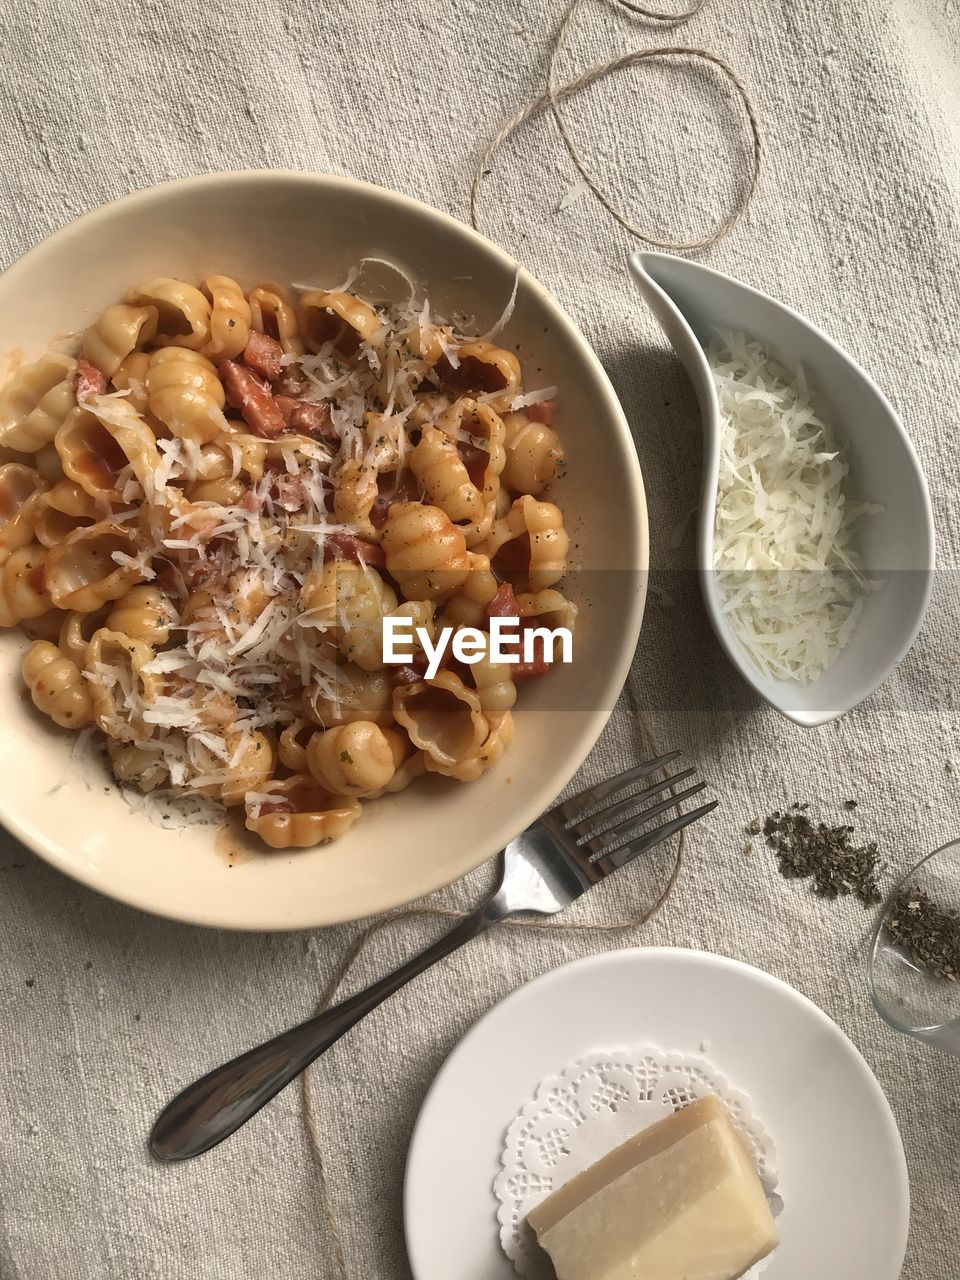 food and drink, food, ready-to-eat, freshness, eating utensil, kitchen utensil, table, bowl, healthy eating, wellbeing, directly above, indoors, meal, spoon, pasta, high angle view, italian food, no people, still life, plate, breakfast, spaghetti